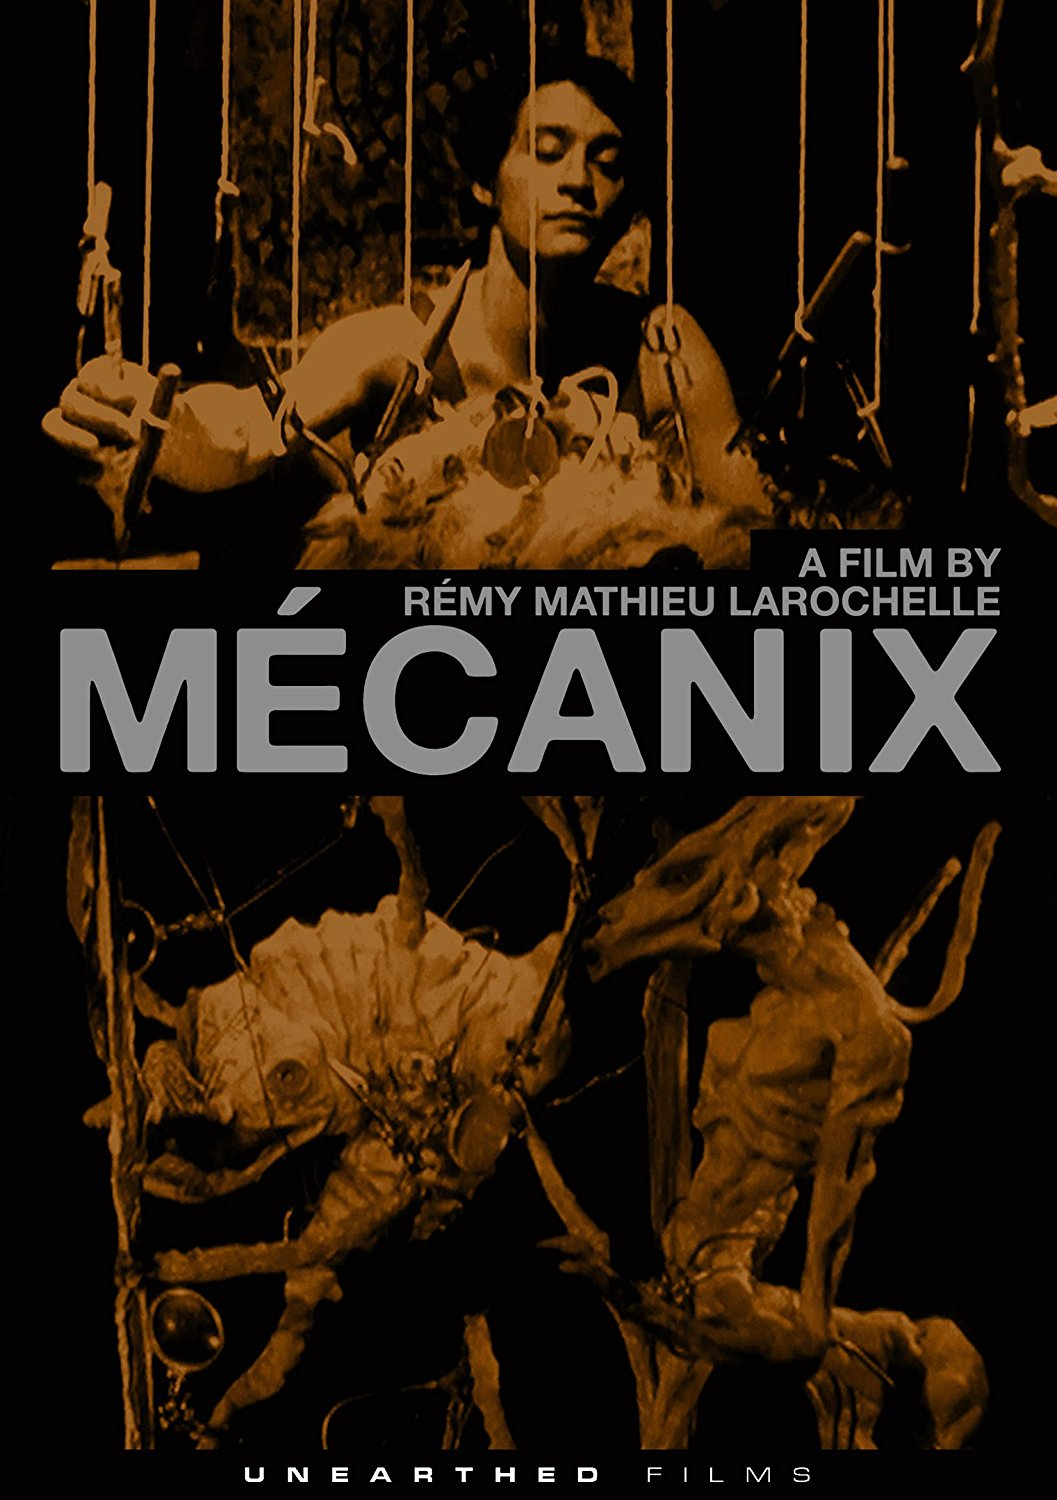 Severed Cinema review of Mecanix from Unearthed Films